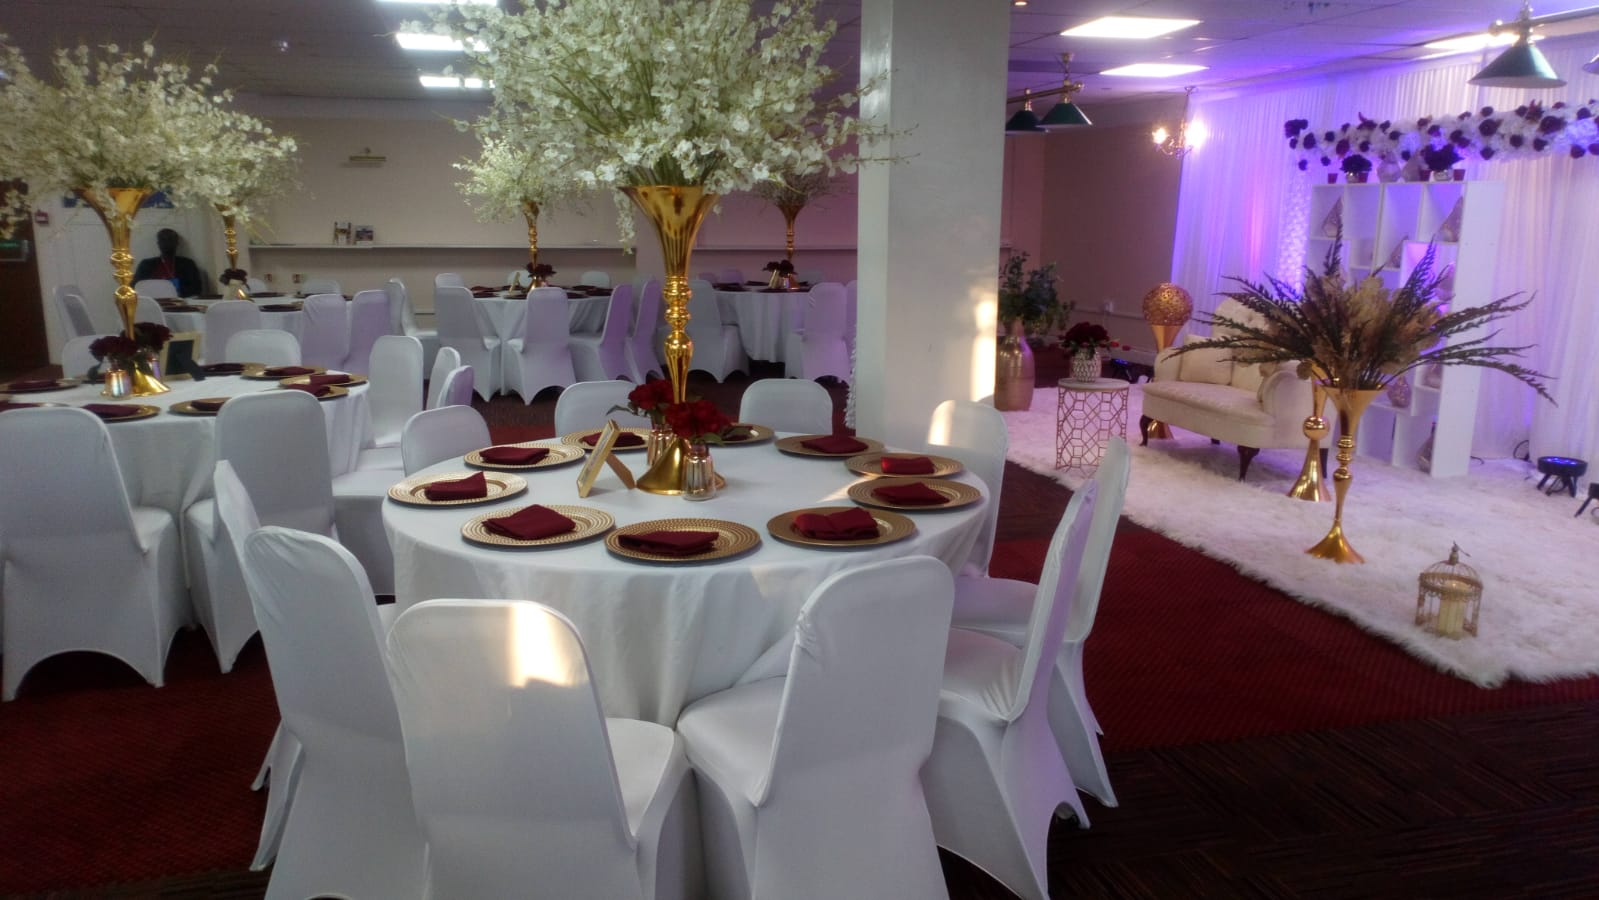 Banquet Hall for Hire